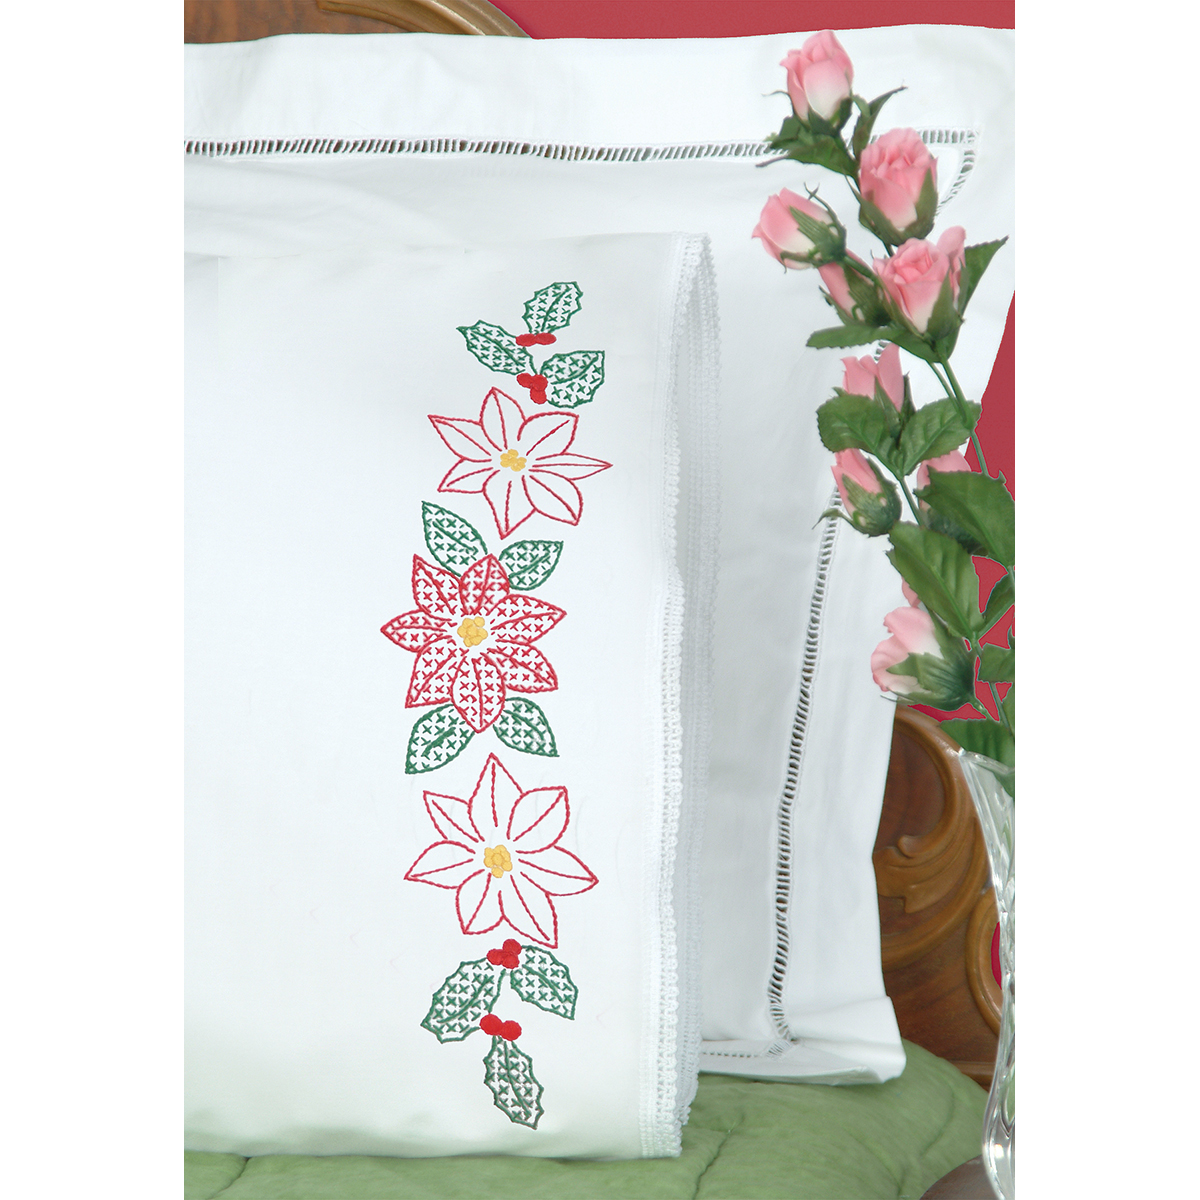 Jack Dempsey Stamped Pillowcases with White Lace Edge, Poinsettias, 2-Pack Multi-Colored